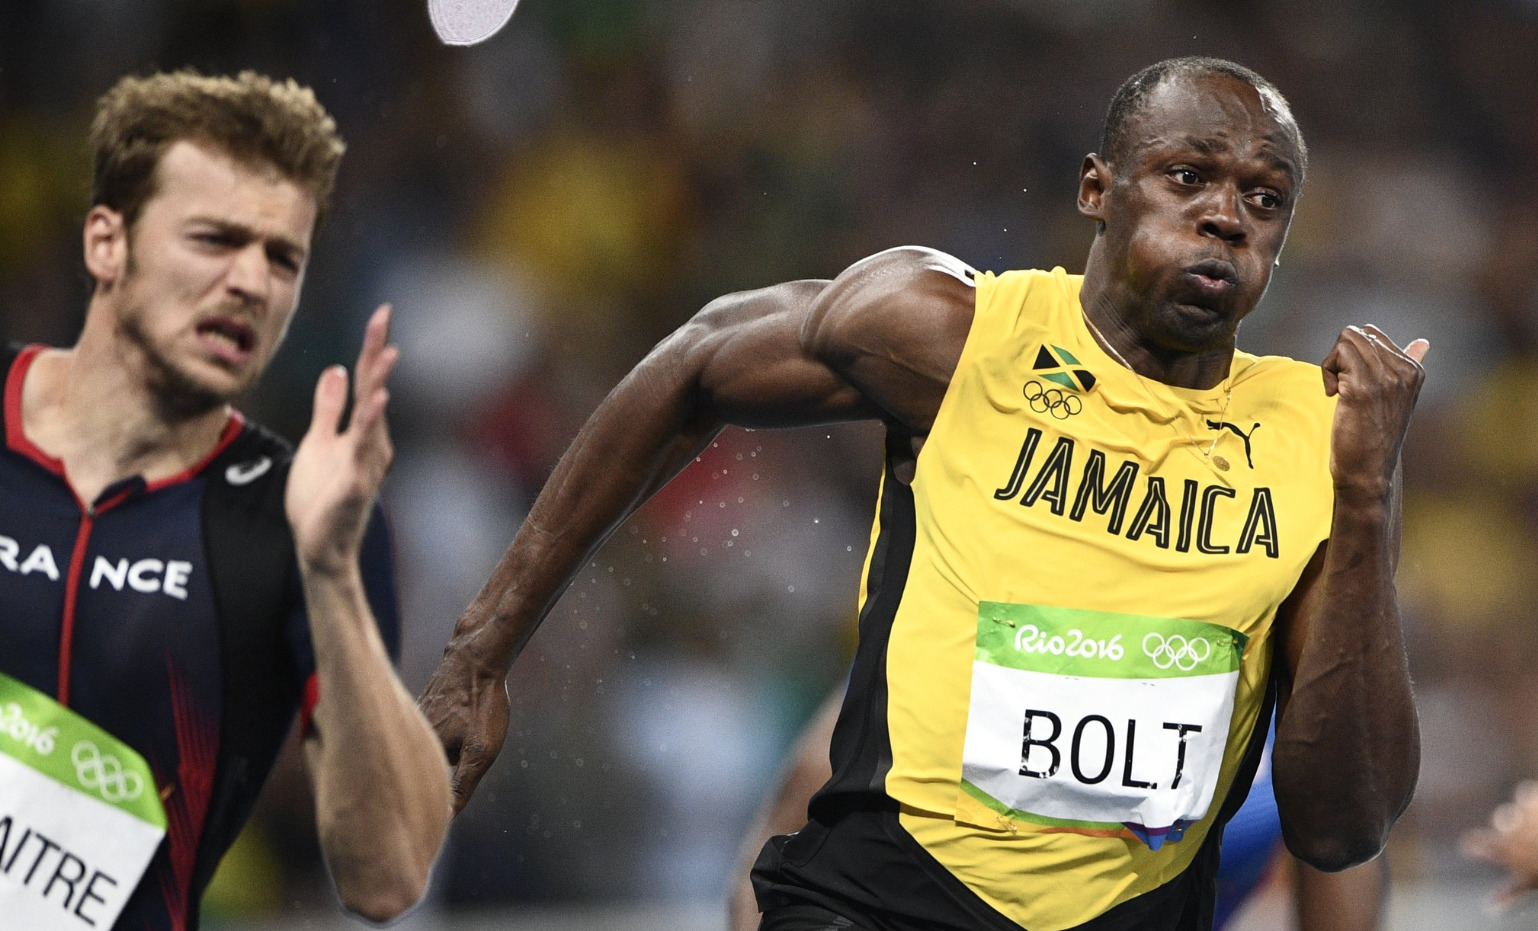 Usain-Bolt-Final-200m-Rio-2016-1